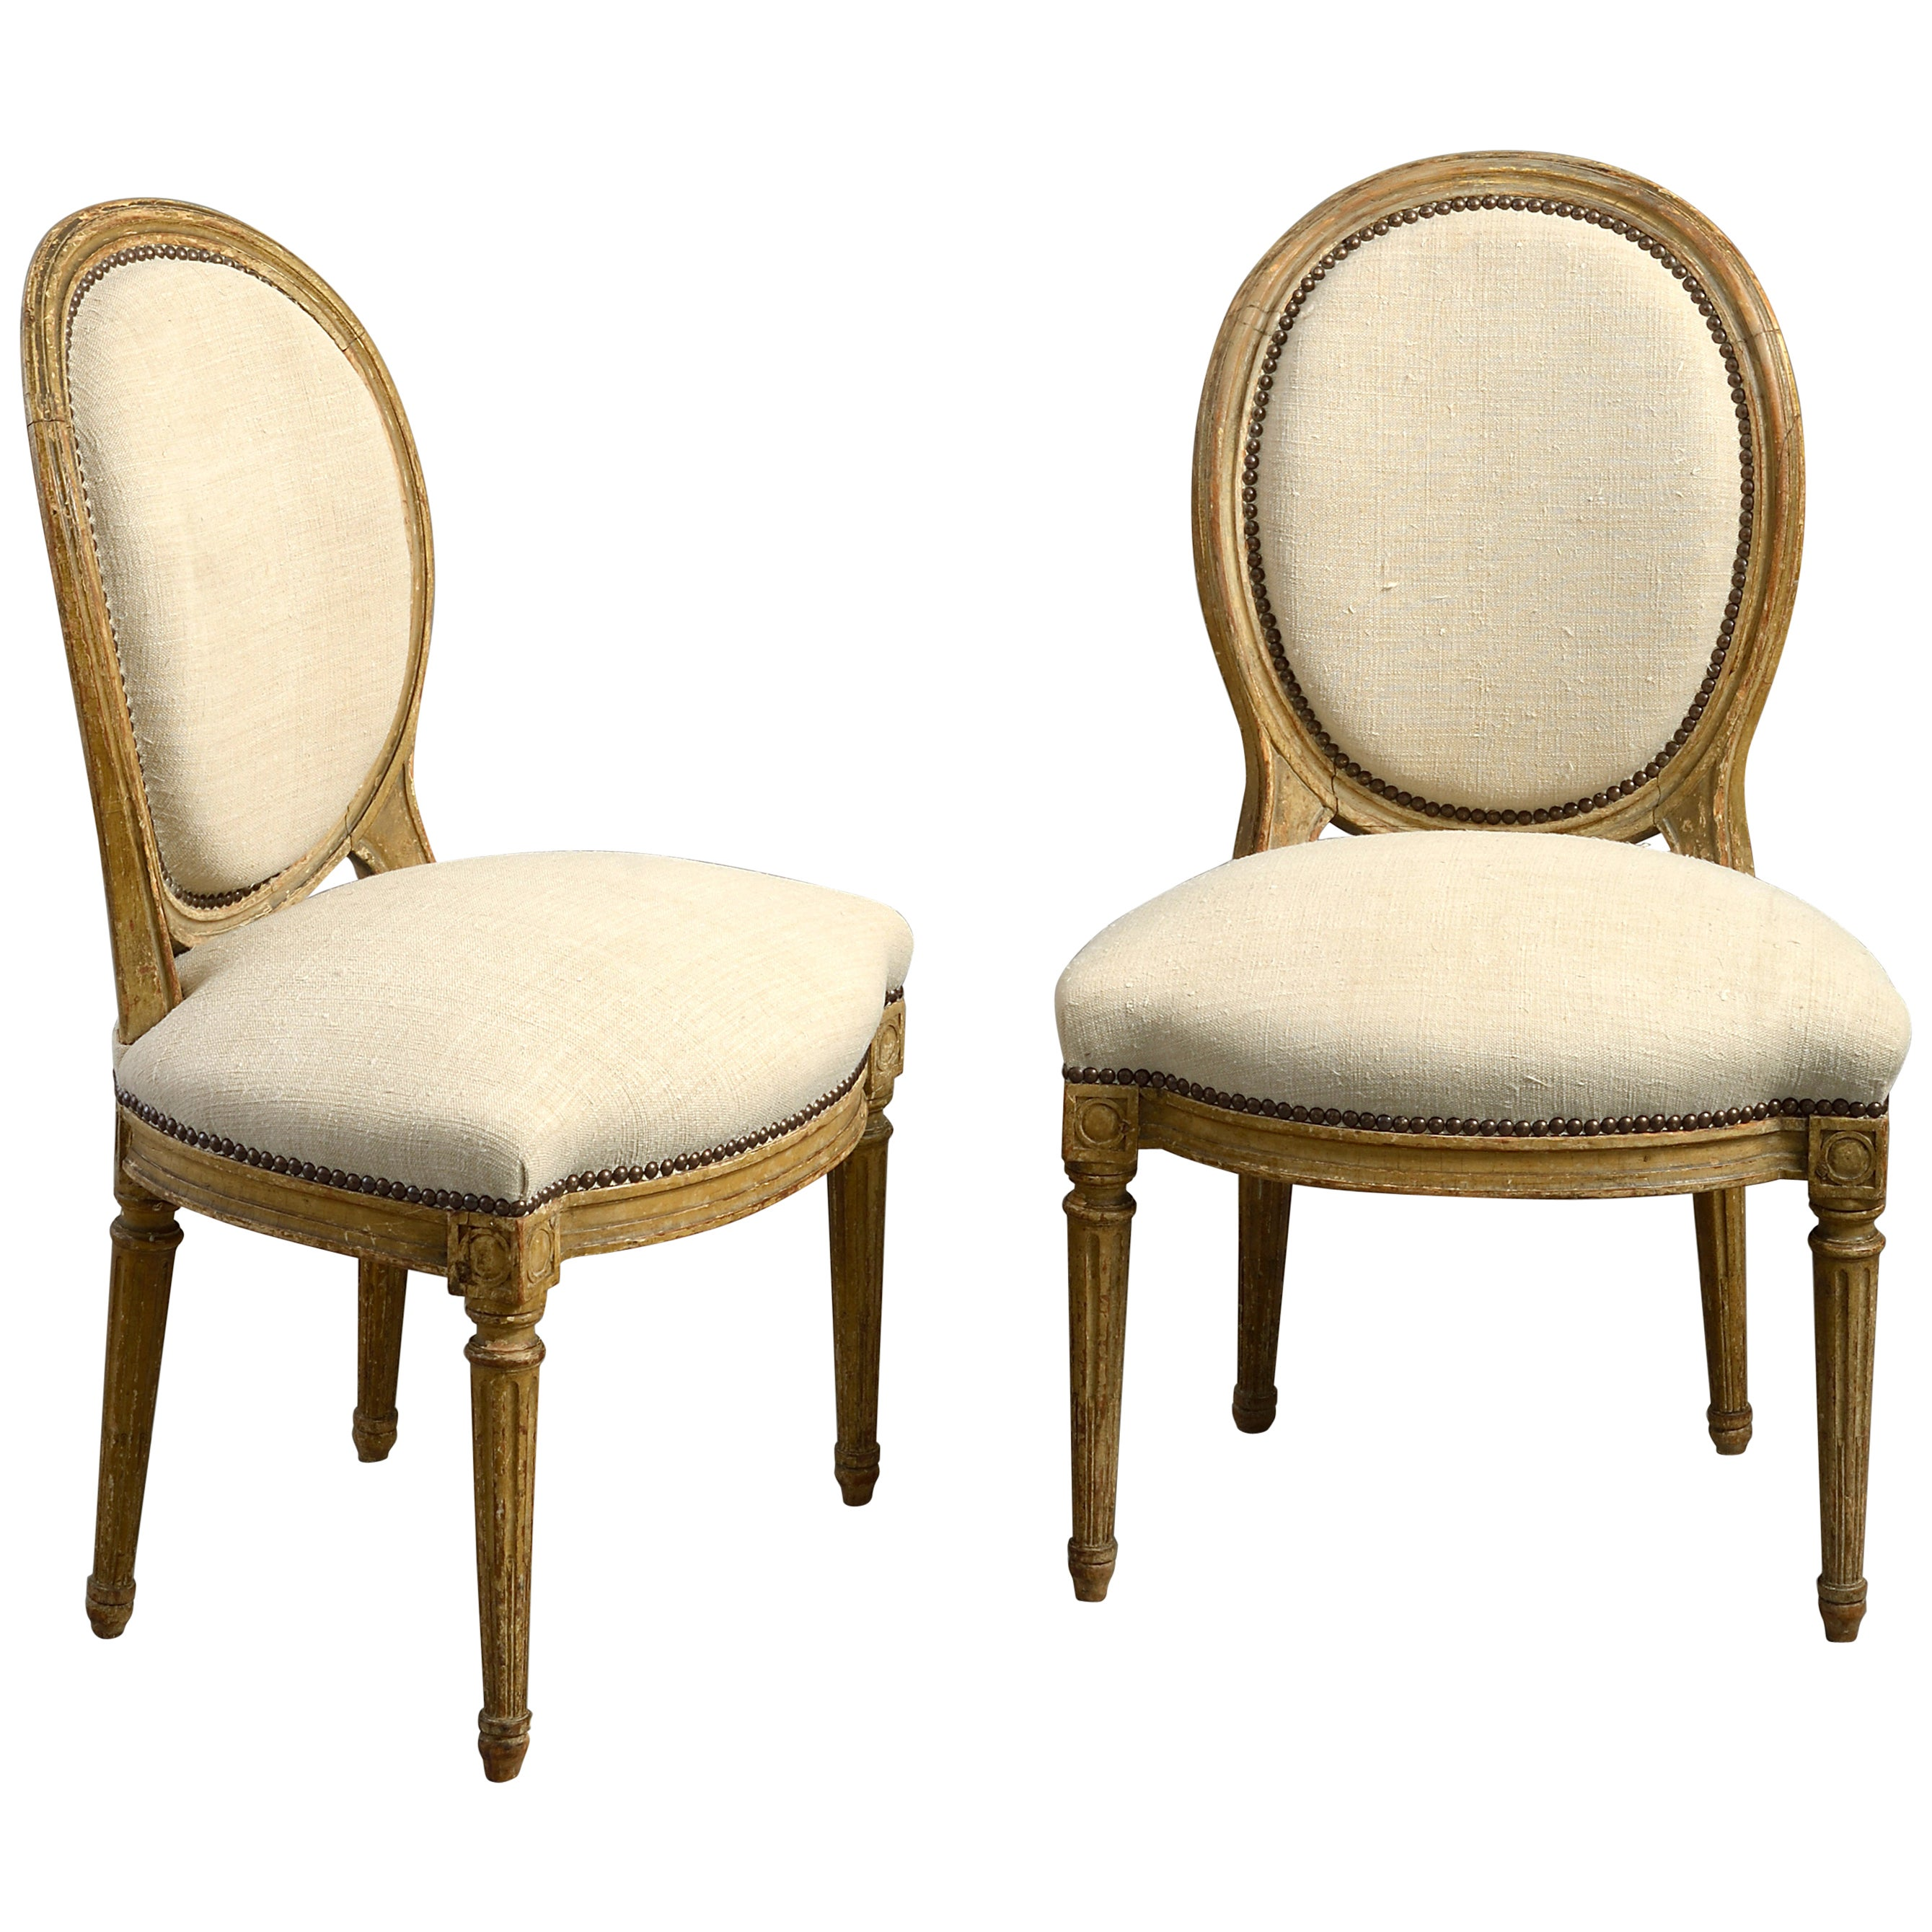 Pair of Late 18th Century Louis XVI Period Painted Side Chairs